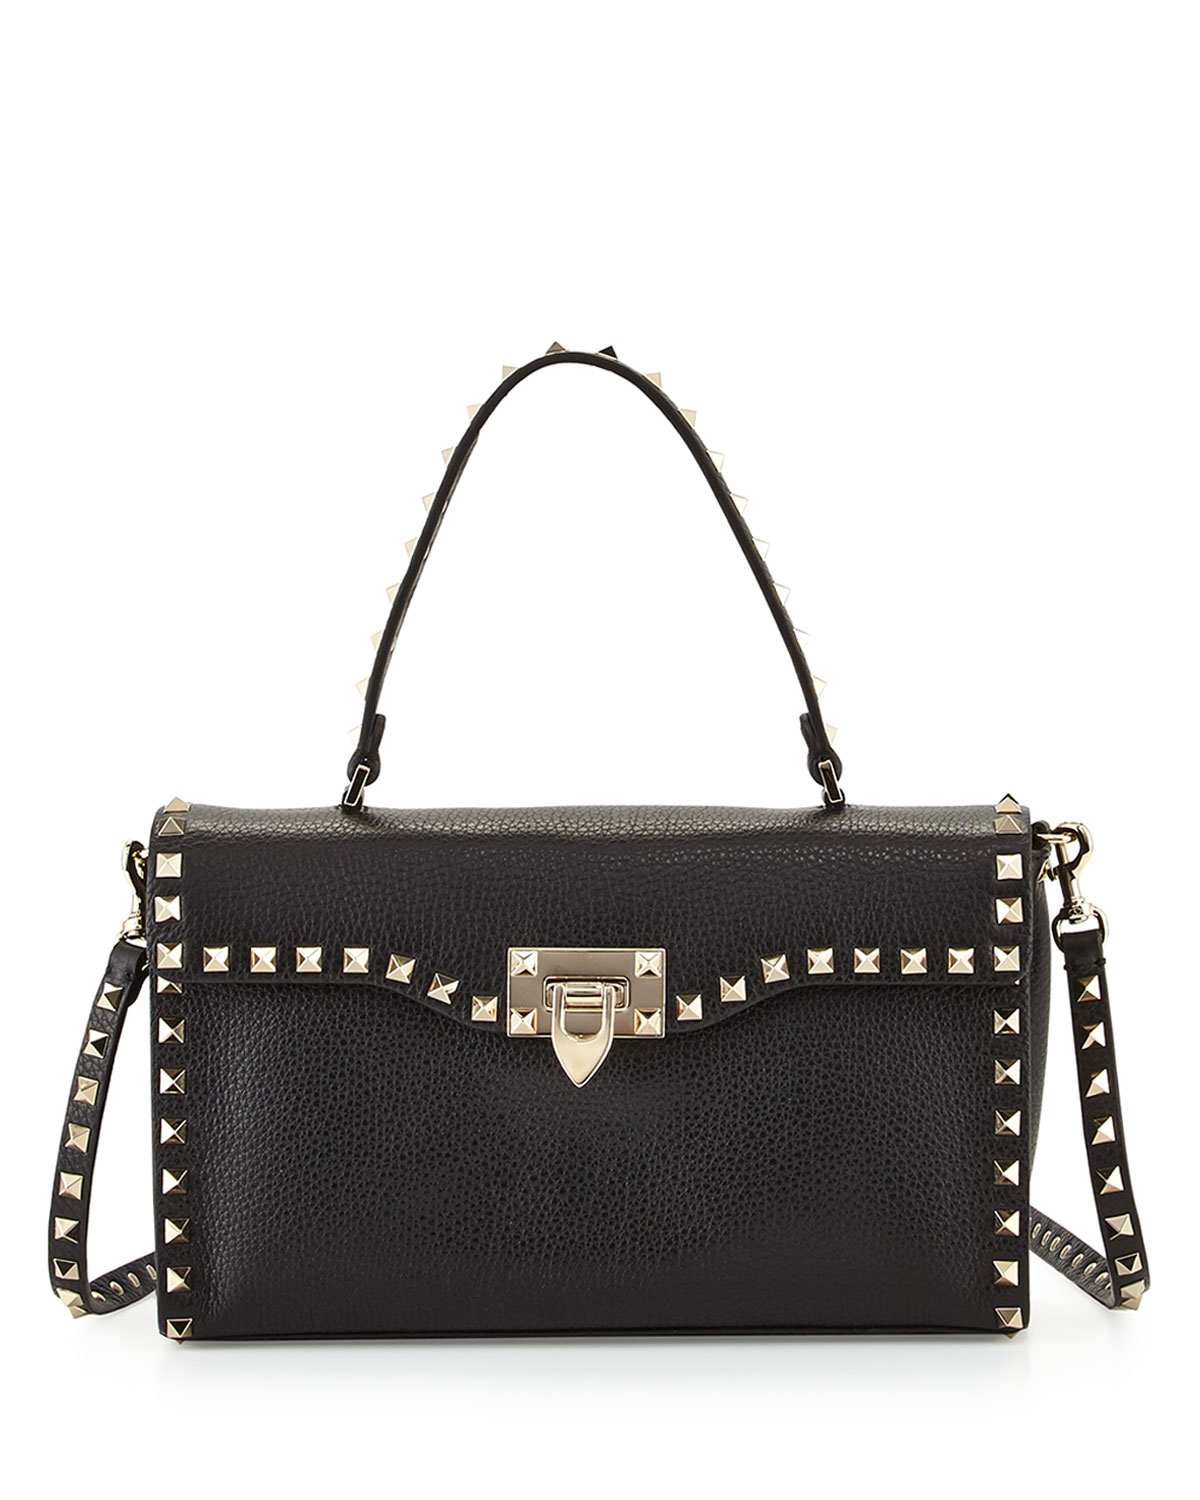 23ba2cd314 Valentino Garavani Rockstud Small Single-Handle Satchel Bag, Black ...